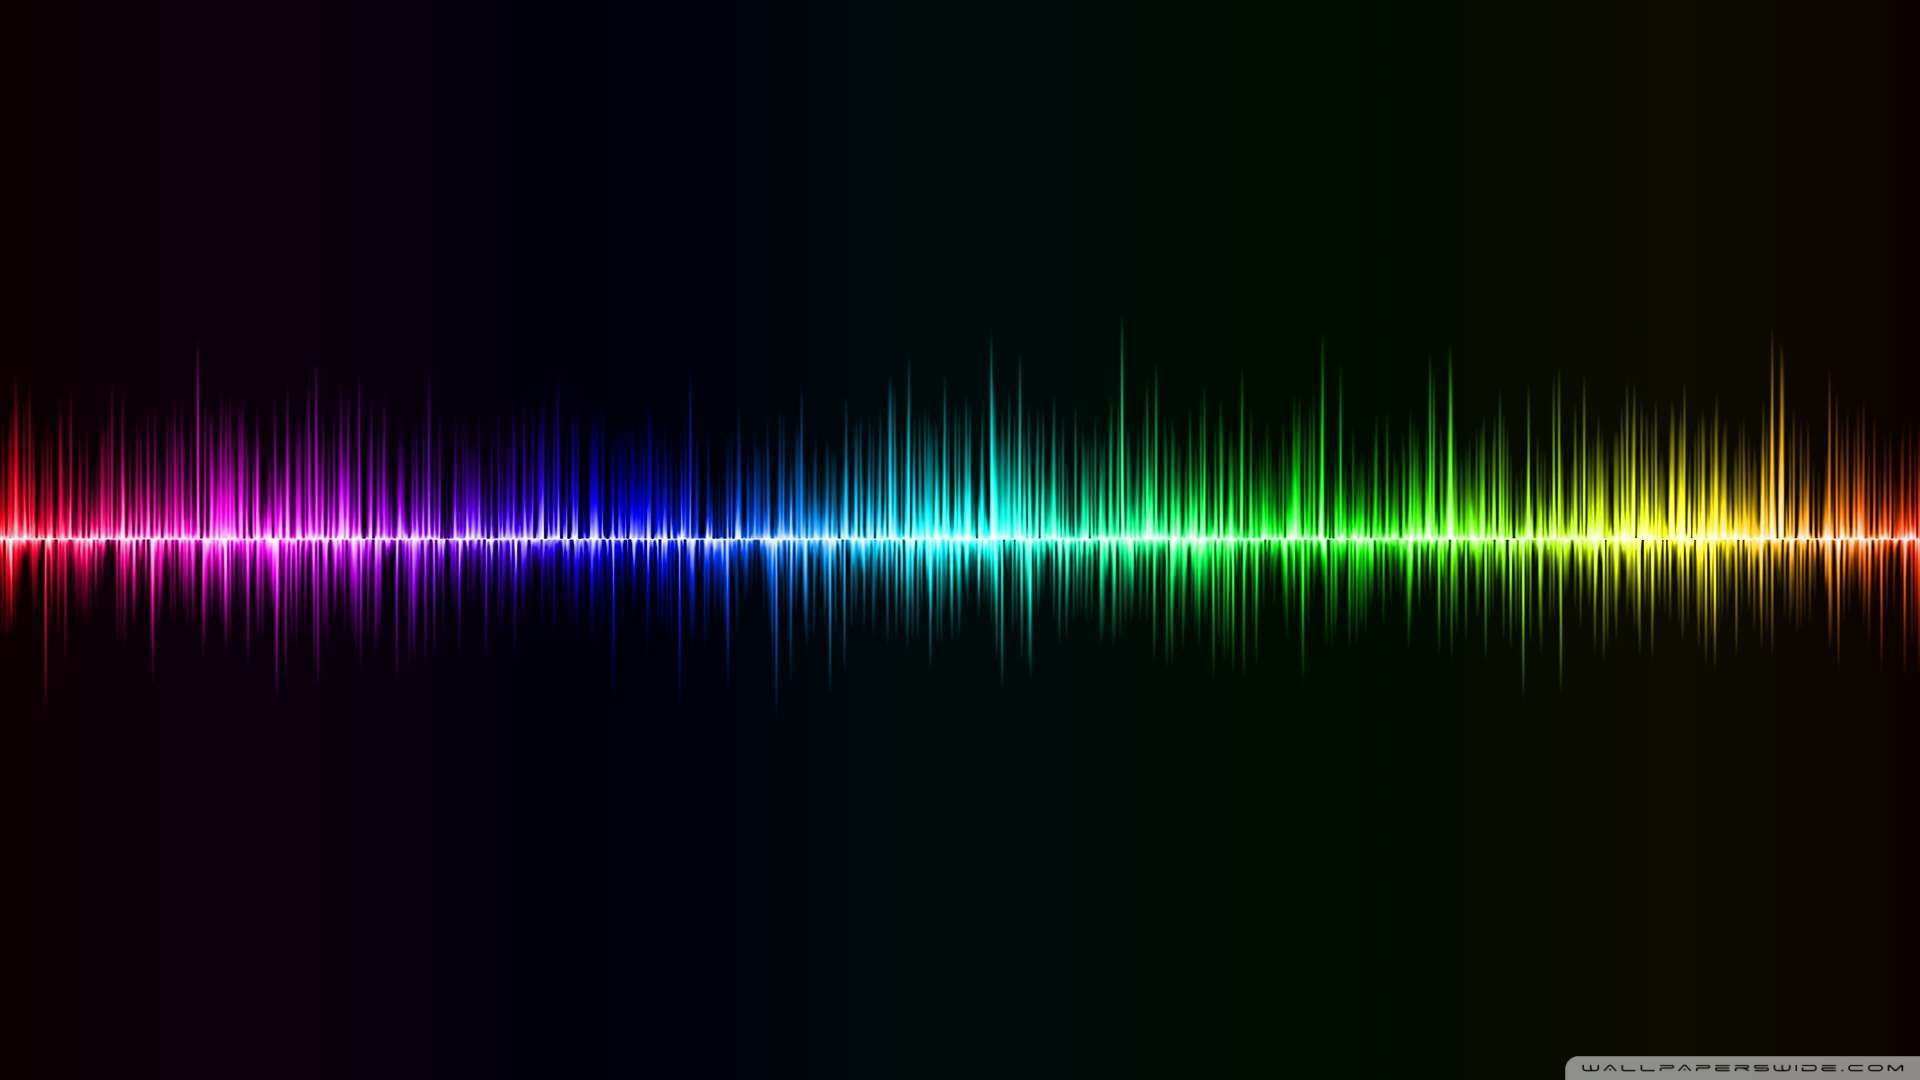 Download Sound Wave Wallpaper 1080p HD at 1920 x 1080 Resolution.